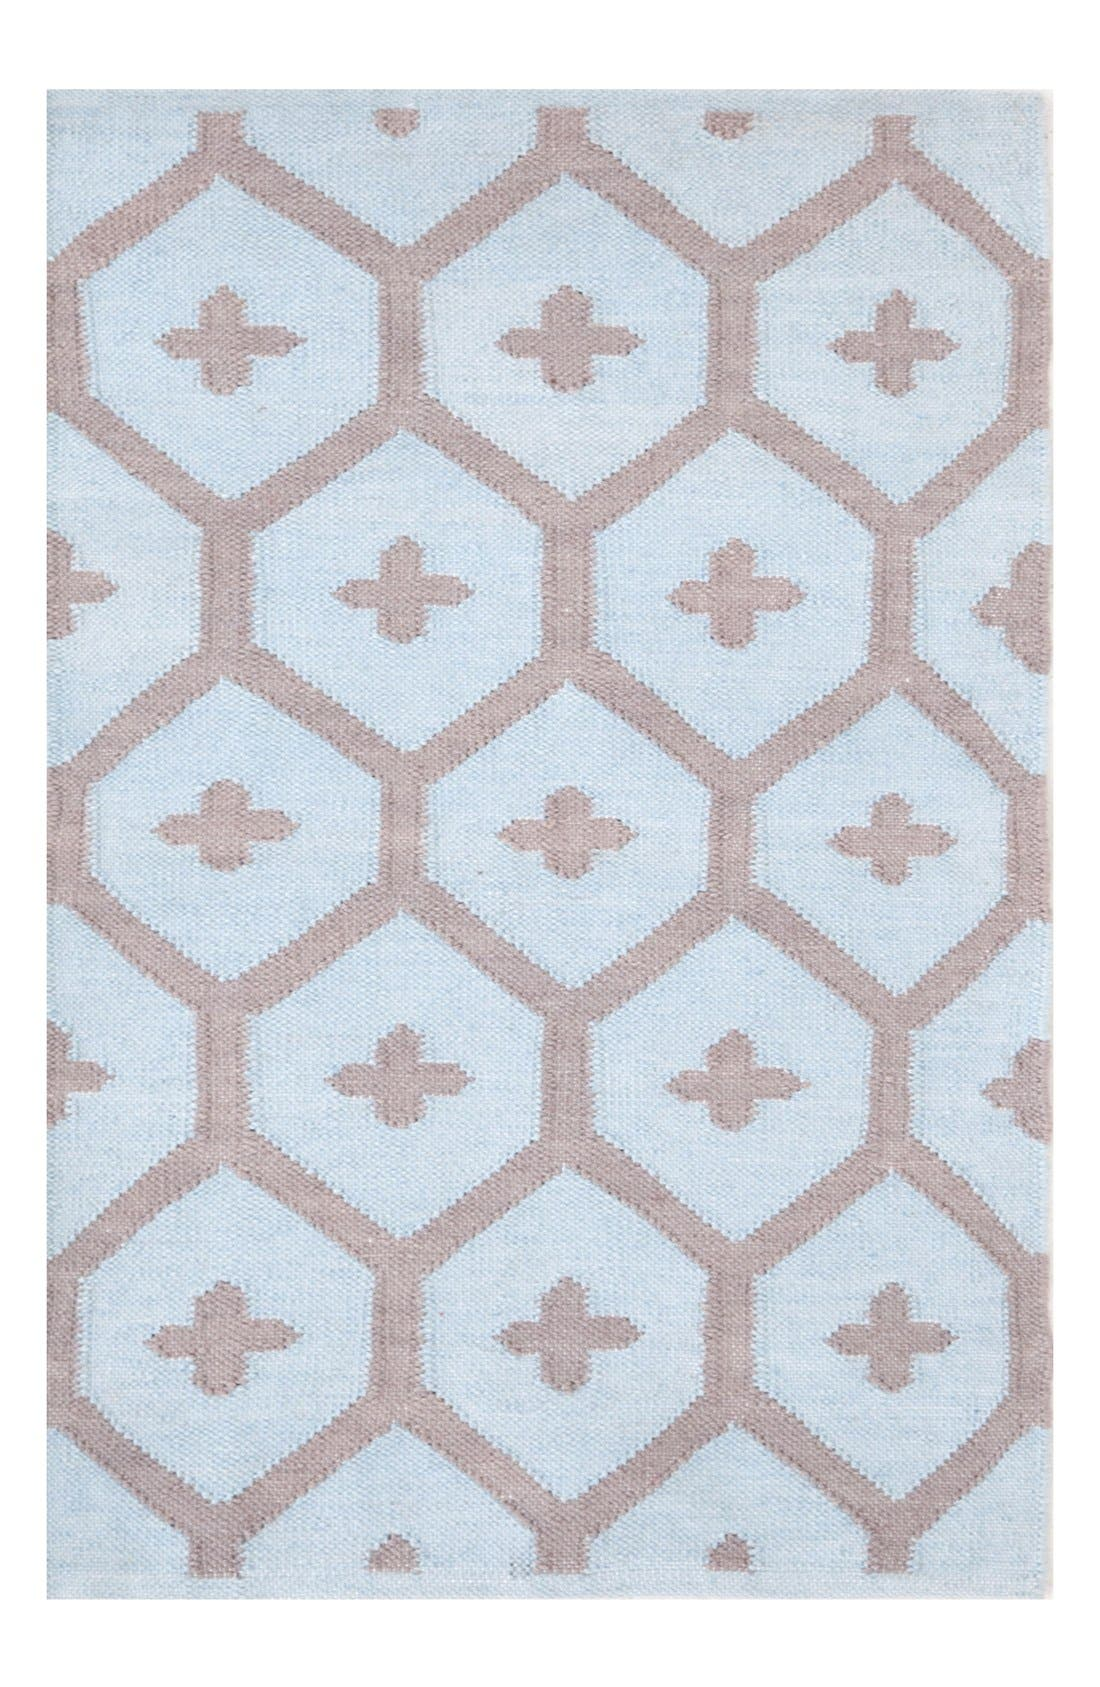 'Elizabeth' Indoor/Outdoor Rug,                             Main thumbnail 1, color,                             400